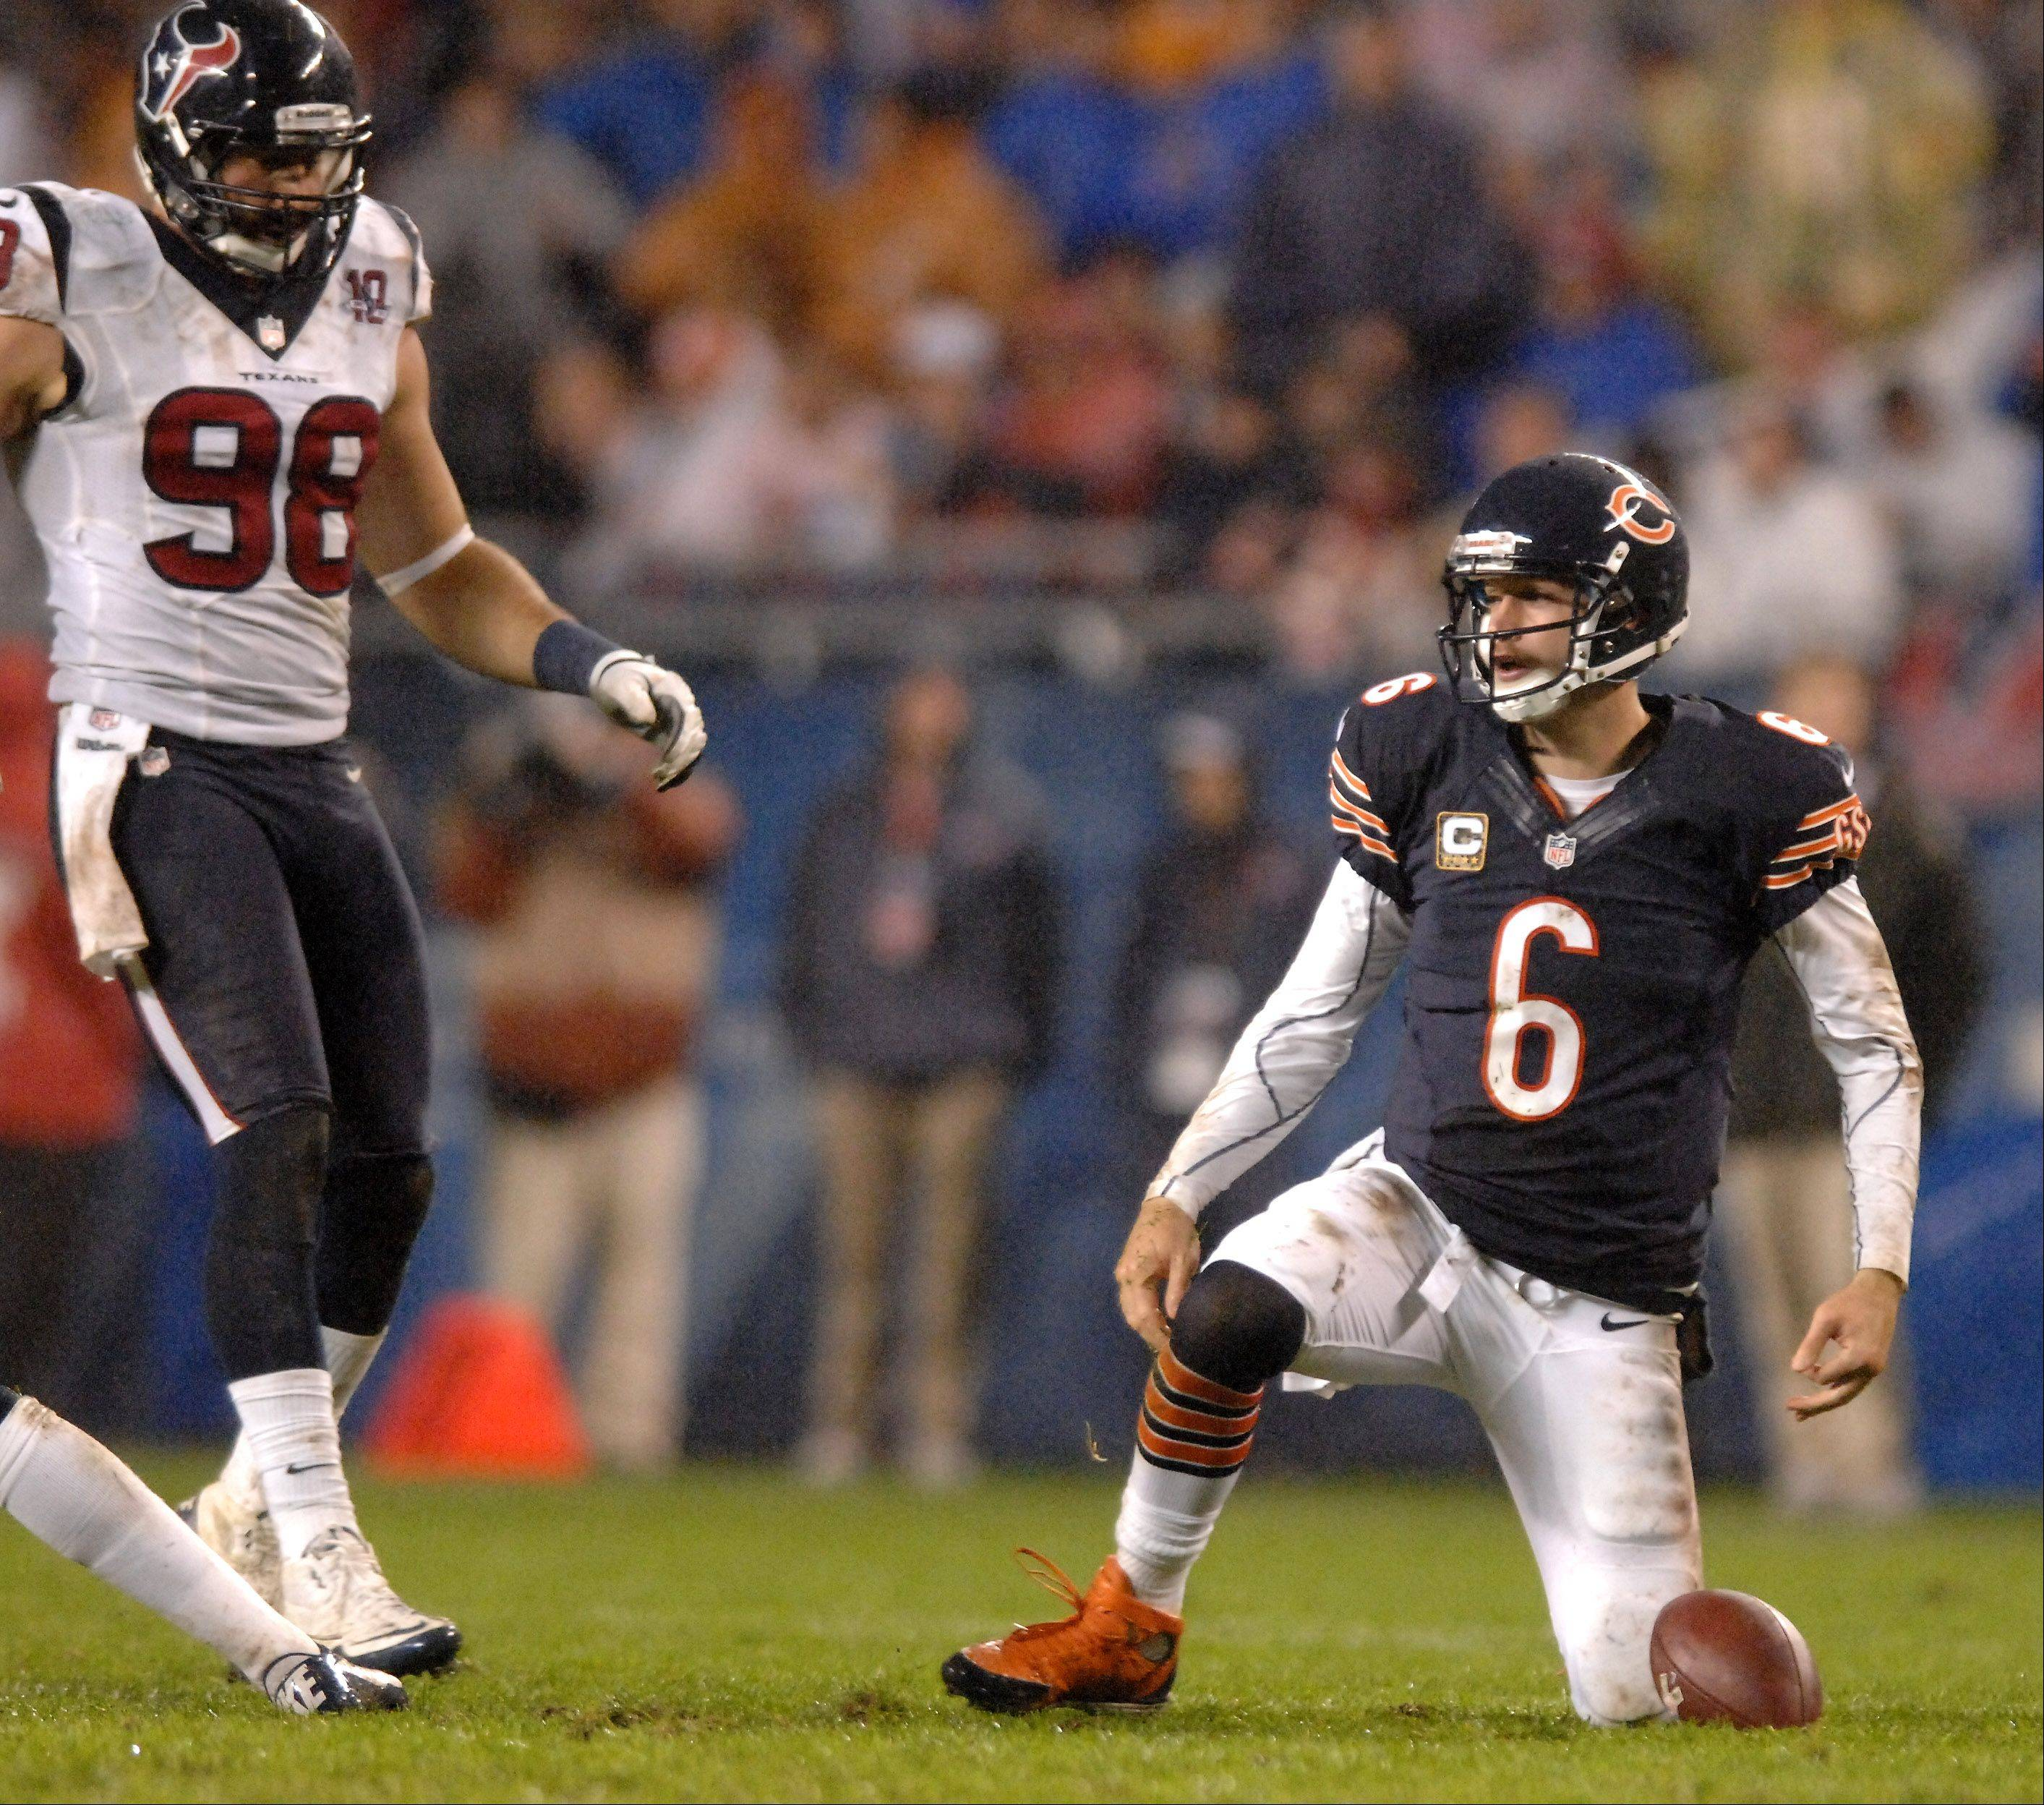 Bears will be cautious with Cutler's return